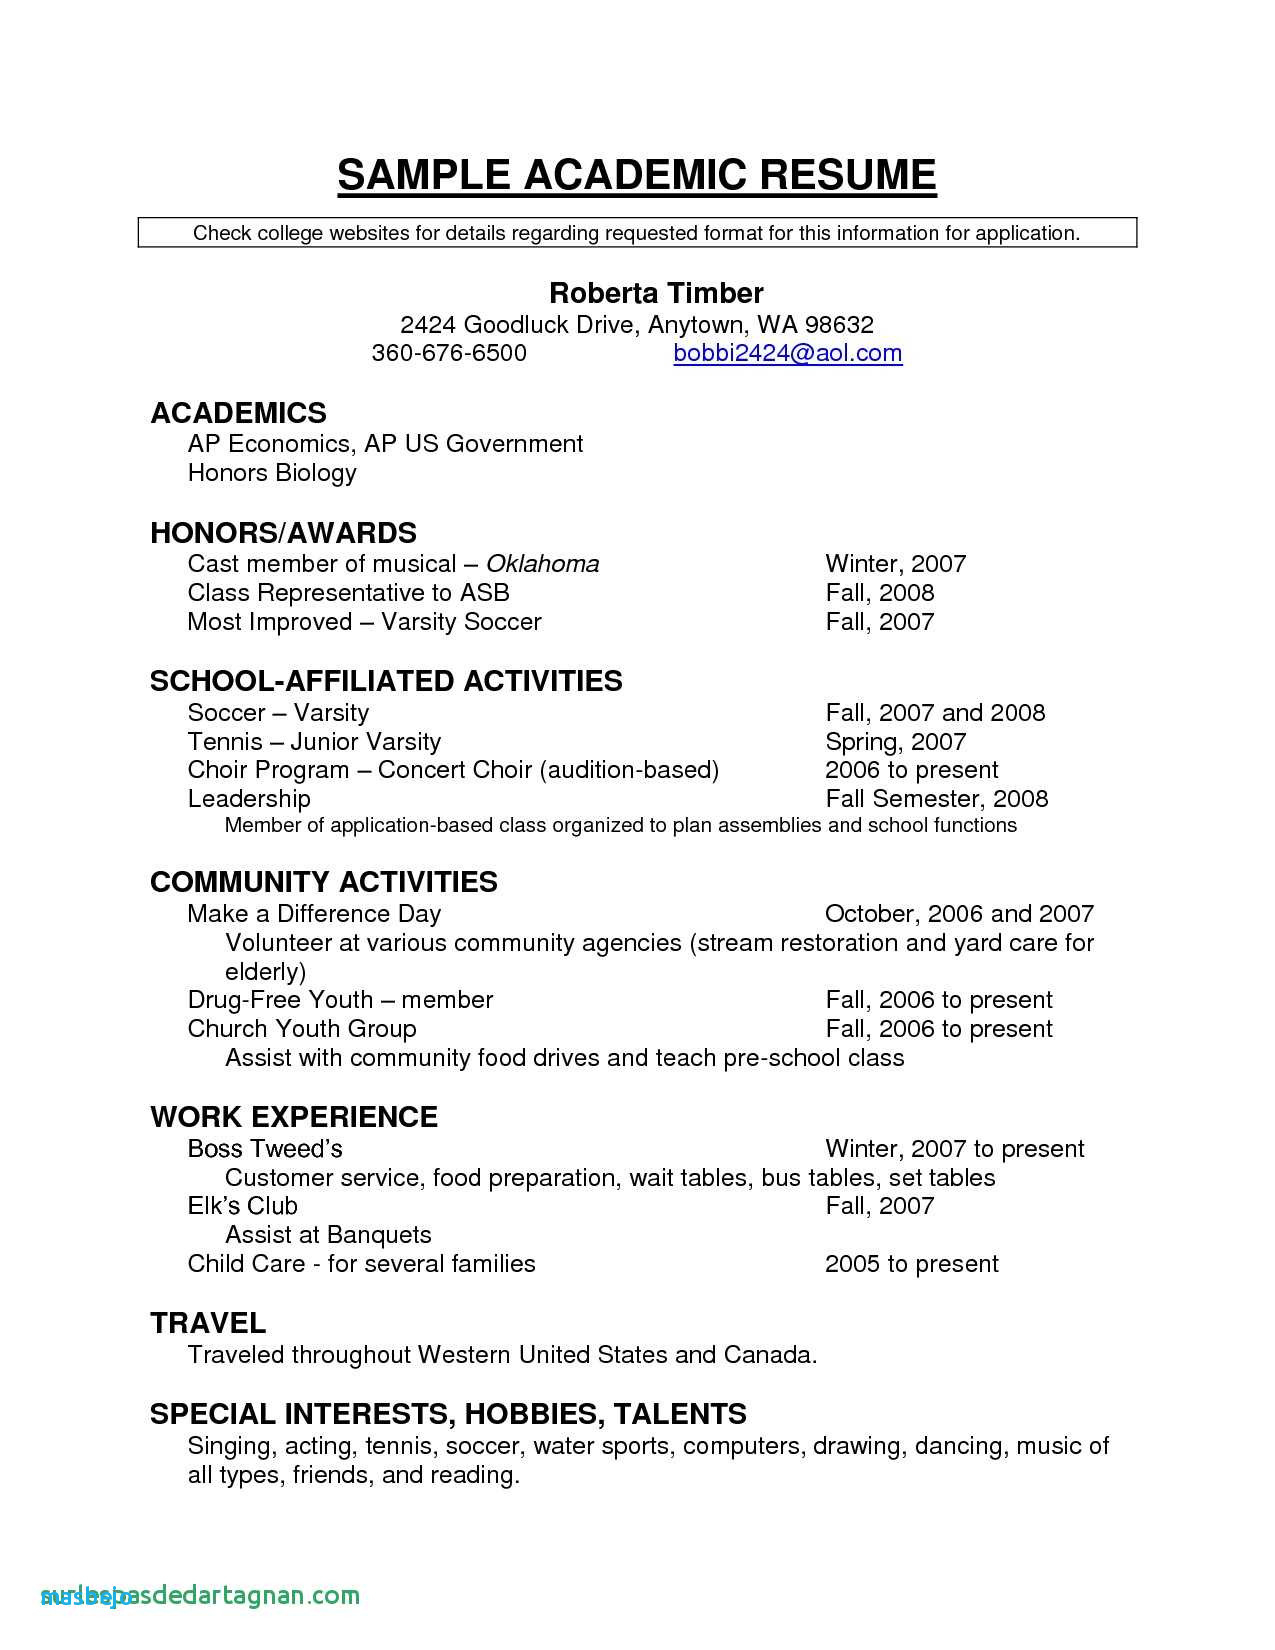 Utd Resume Template - Puter Resume Examples Unique Resume for Highschool Students